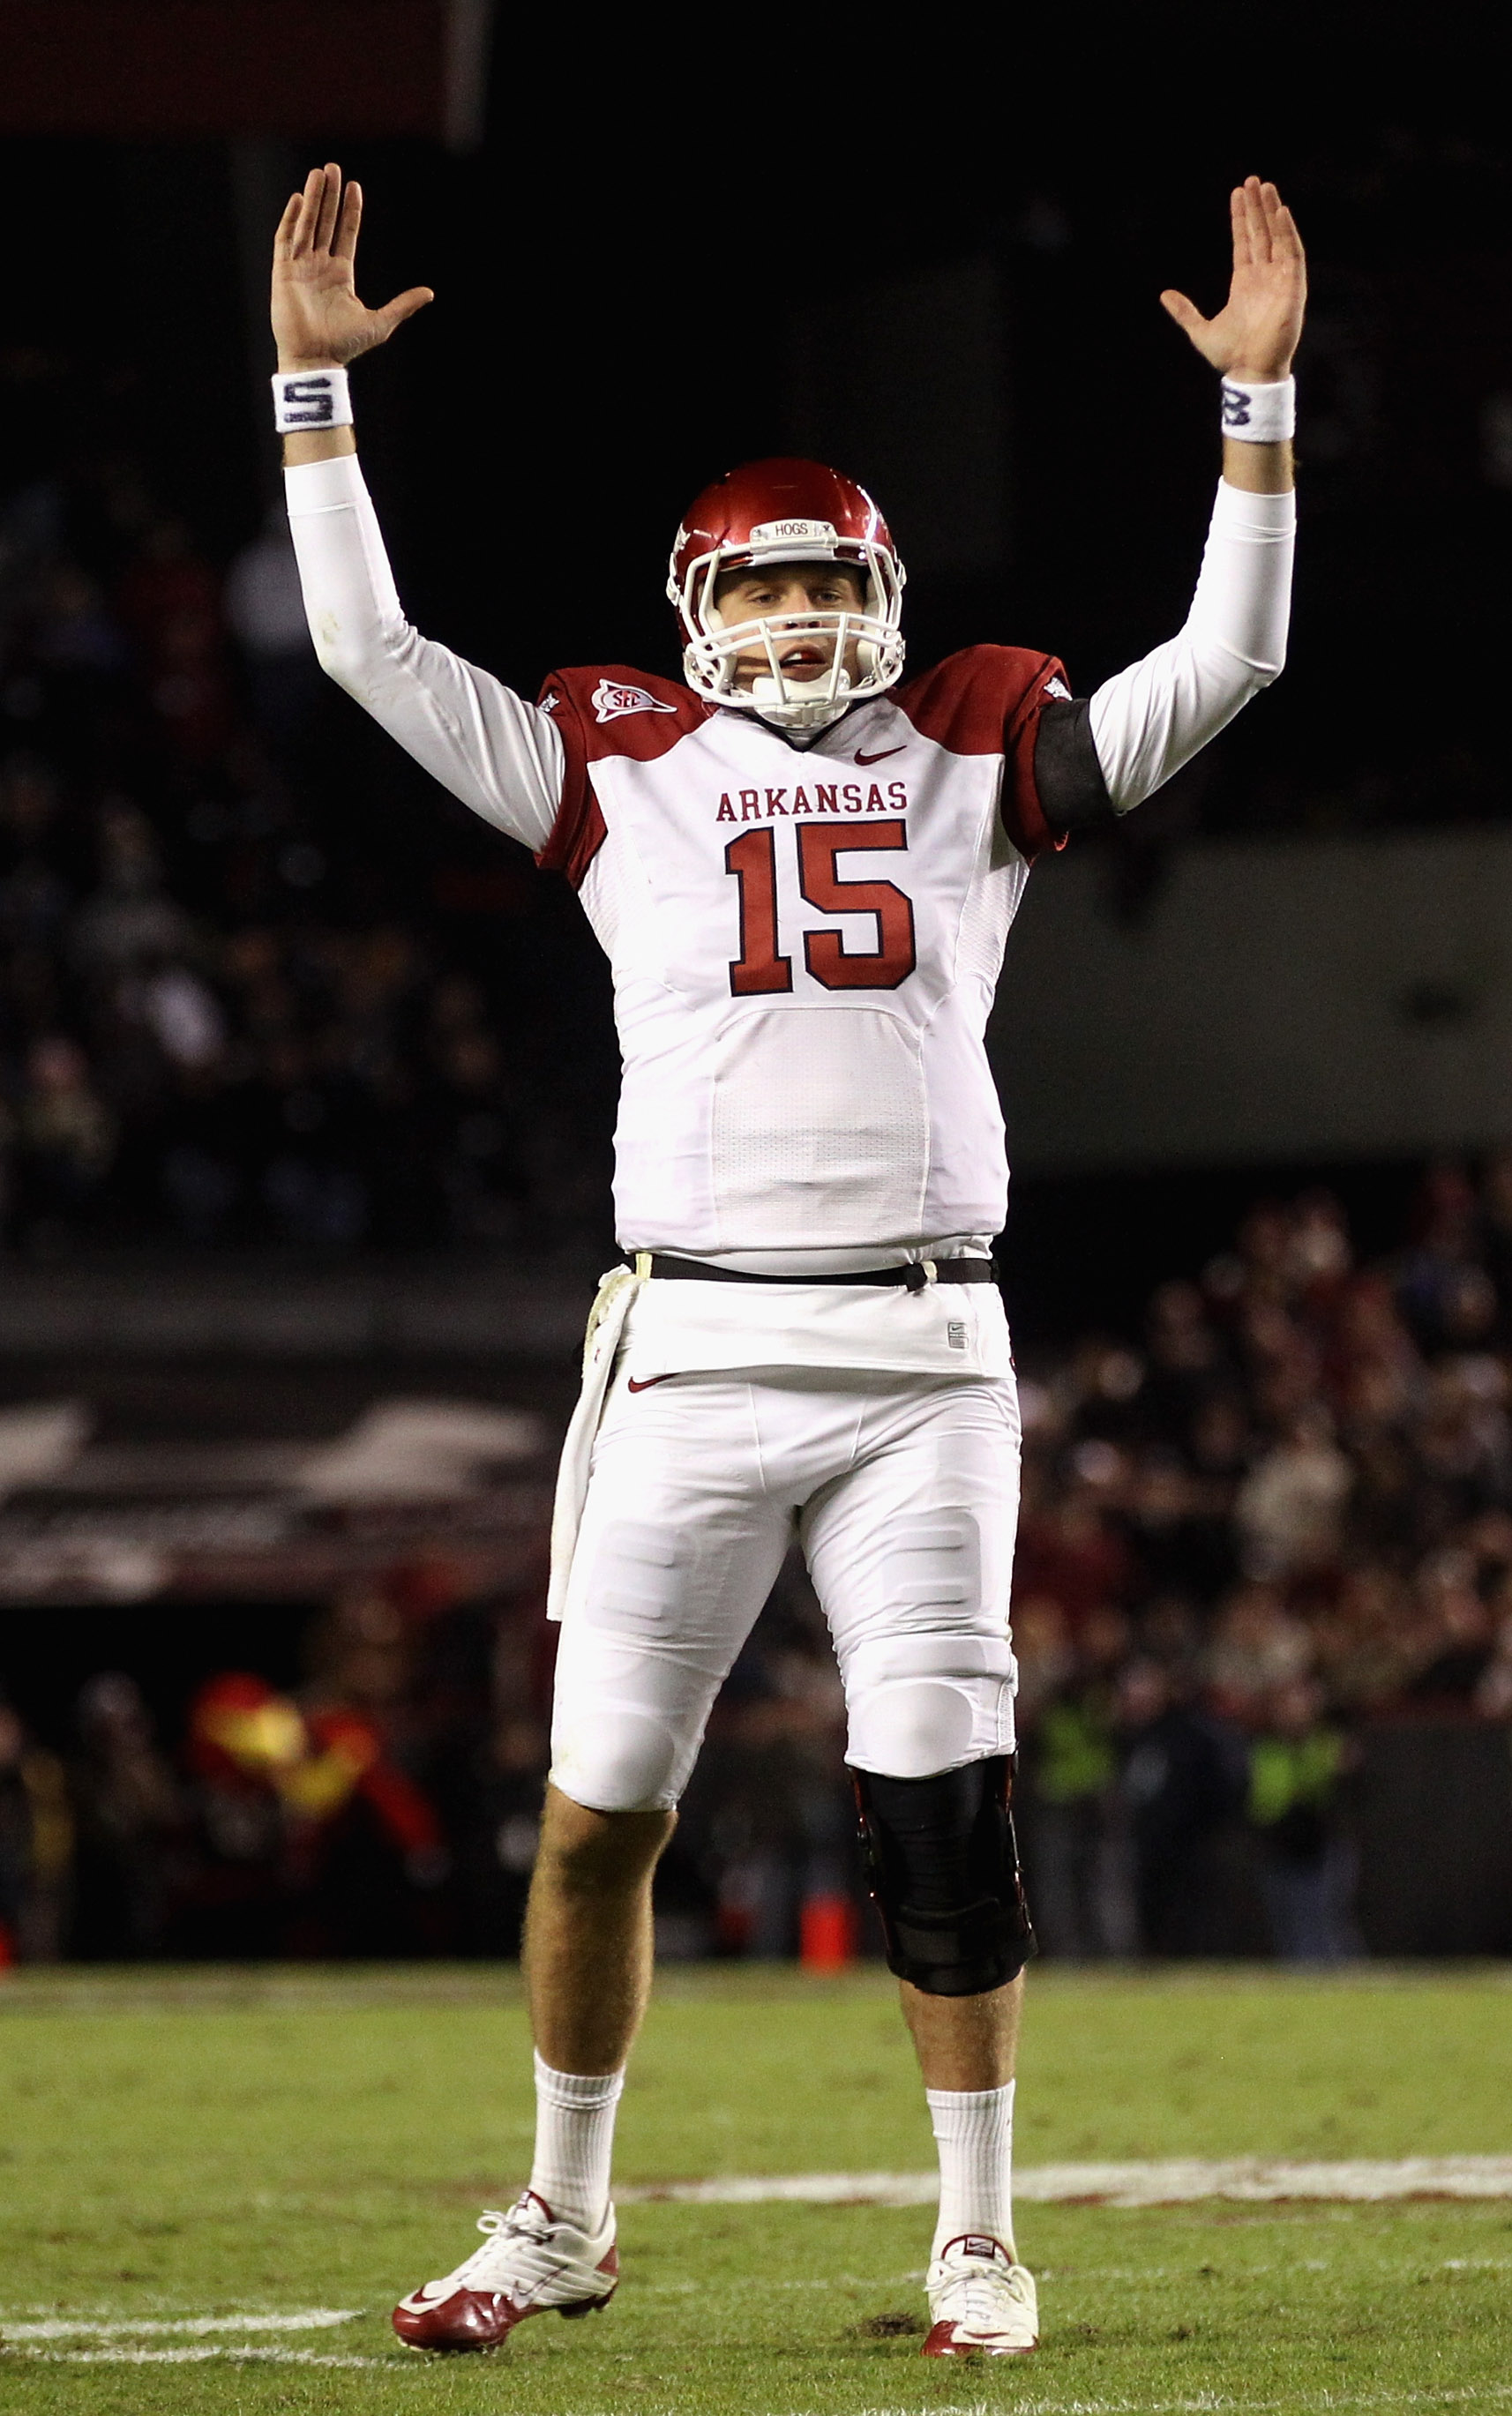 COLUMBIA, SC - NOVEMBER 06:  Ryan Mallett #15 of the Arkansas Razorbacks celebrates after a touchdown against the South Carolina Gamecocks during their game at Williams-Brice Stadium on November 6, 2010 in Columbia, South Carolina.  (Photo by Streeter Lec